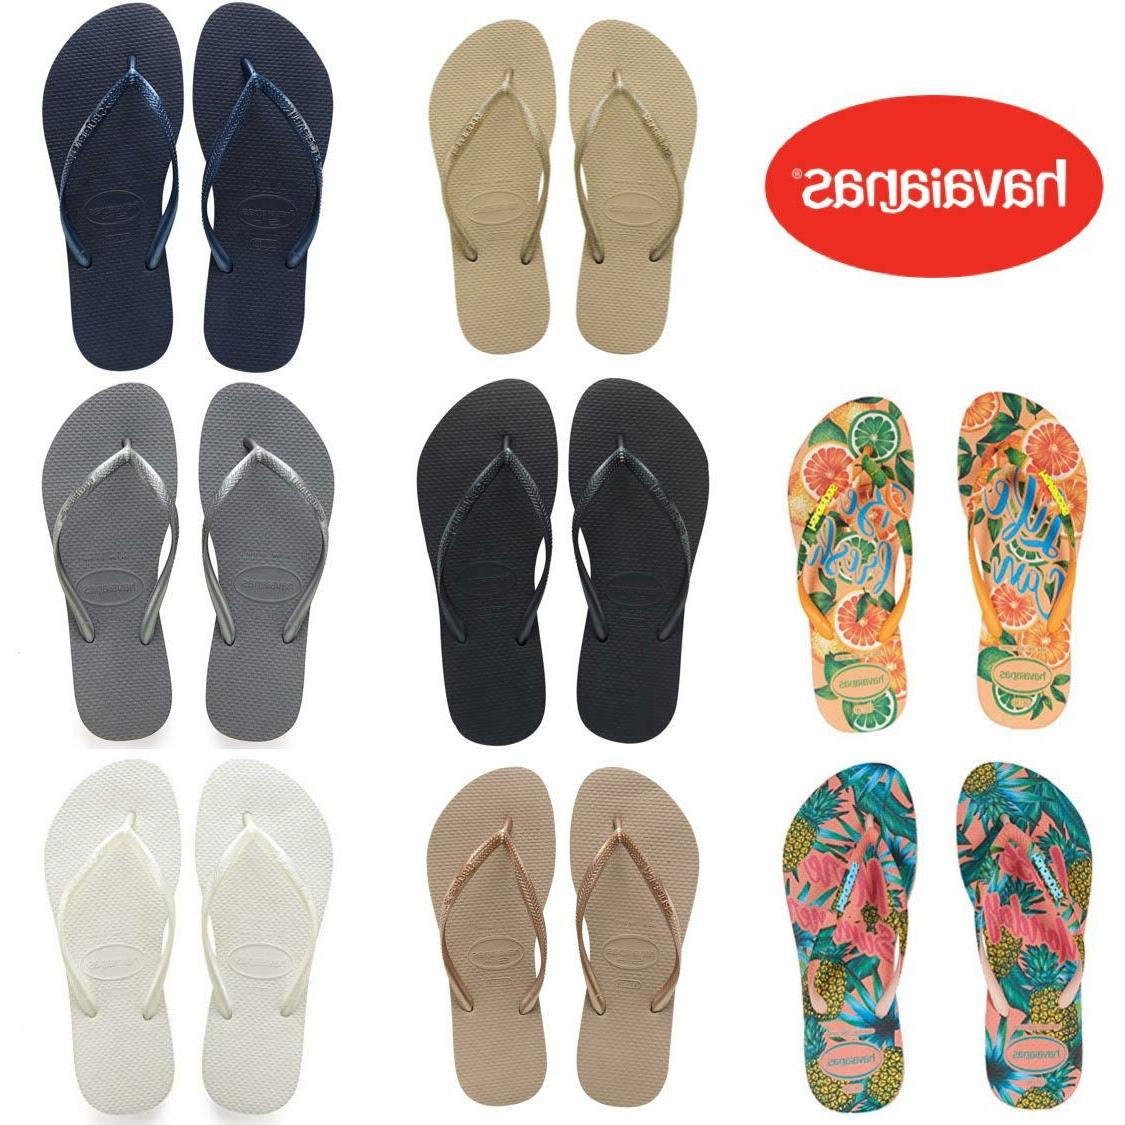 new women s slim flip flops us